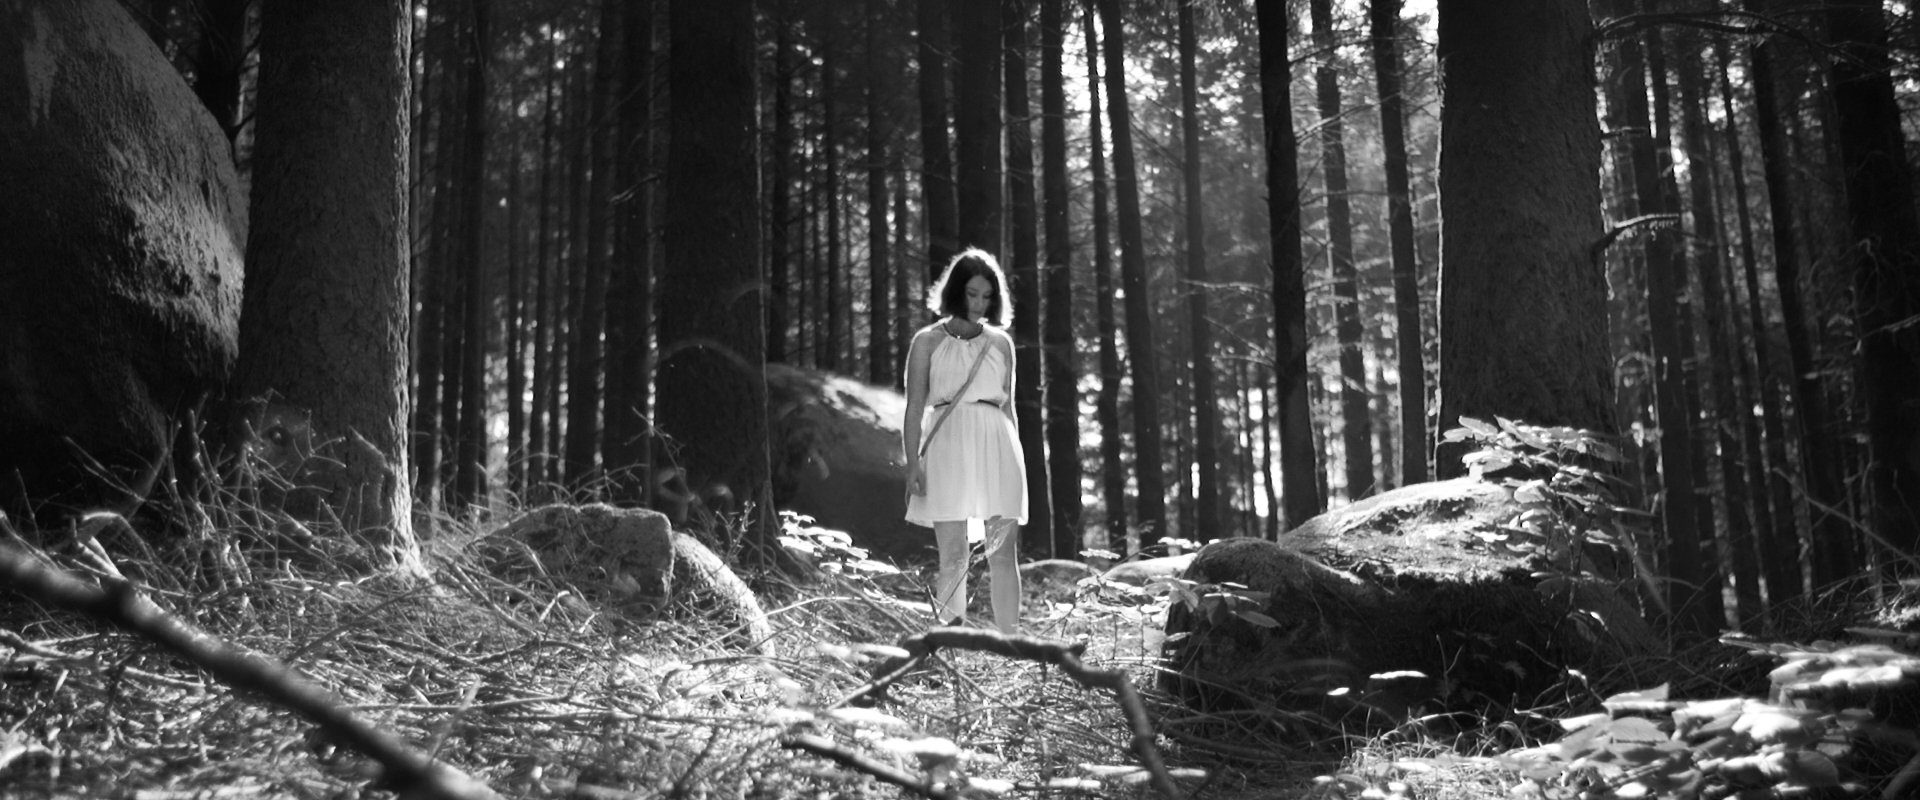 woman wearing a summer white dress alone in a forest of massive trees